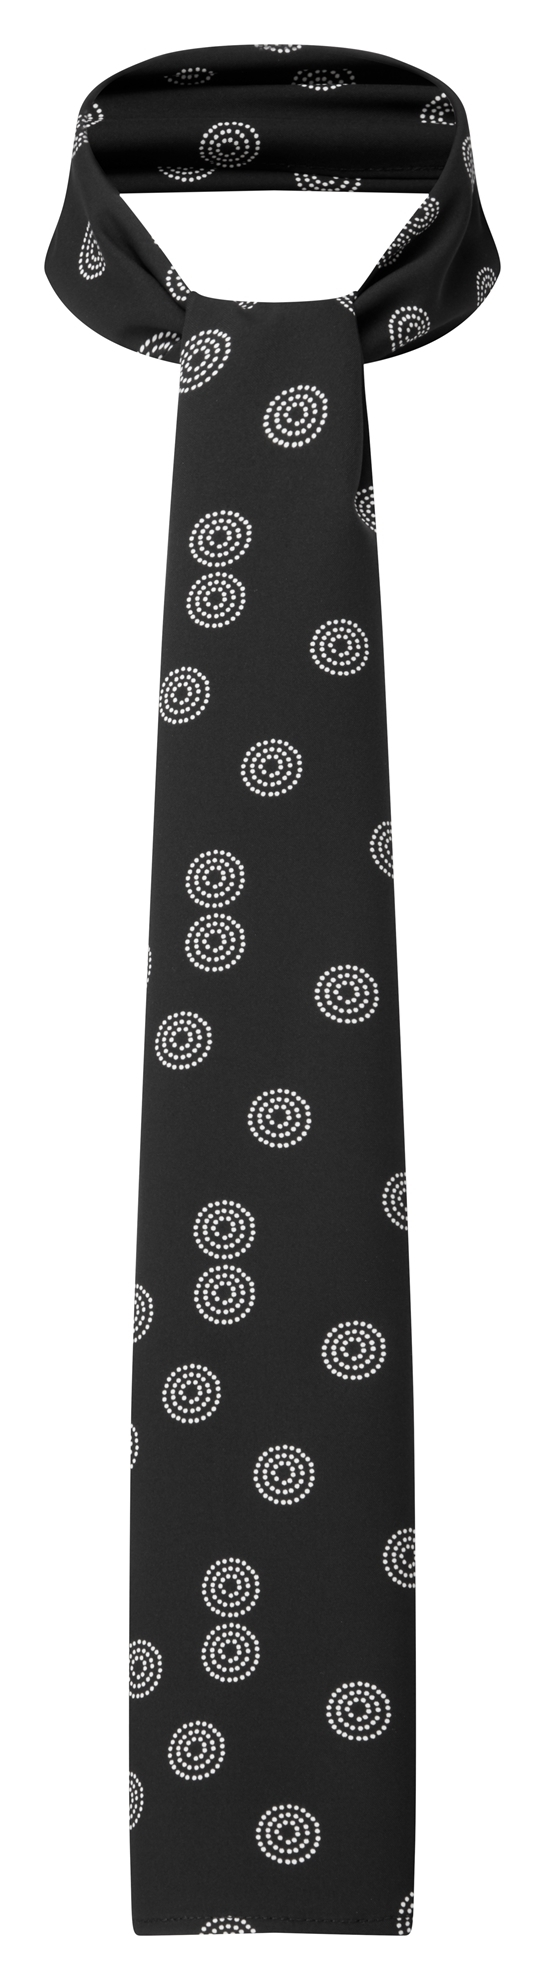 Picture of Long Scarf - Black/White Sienna Print